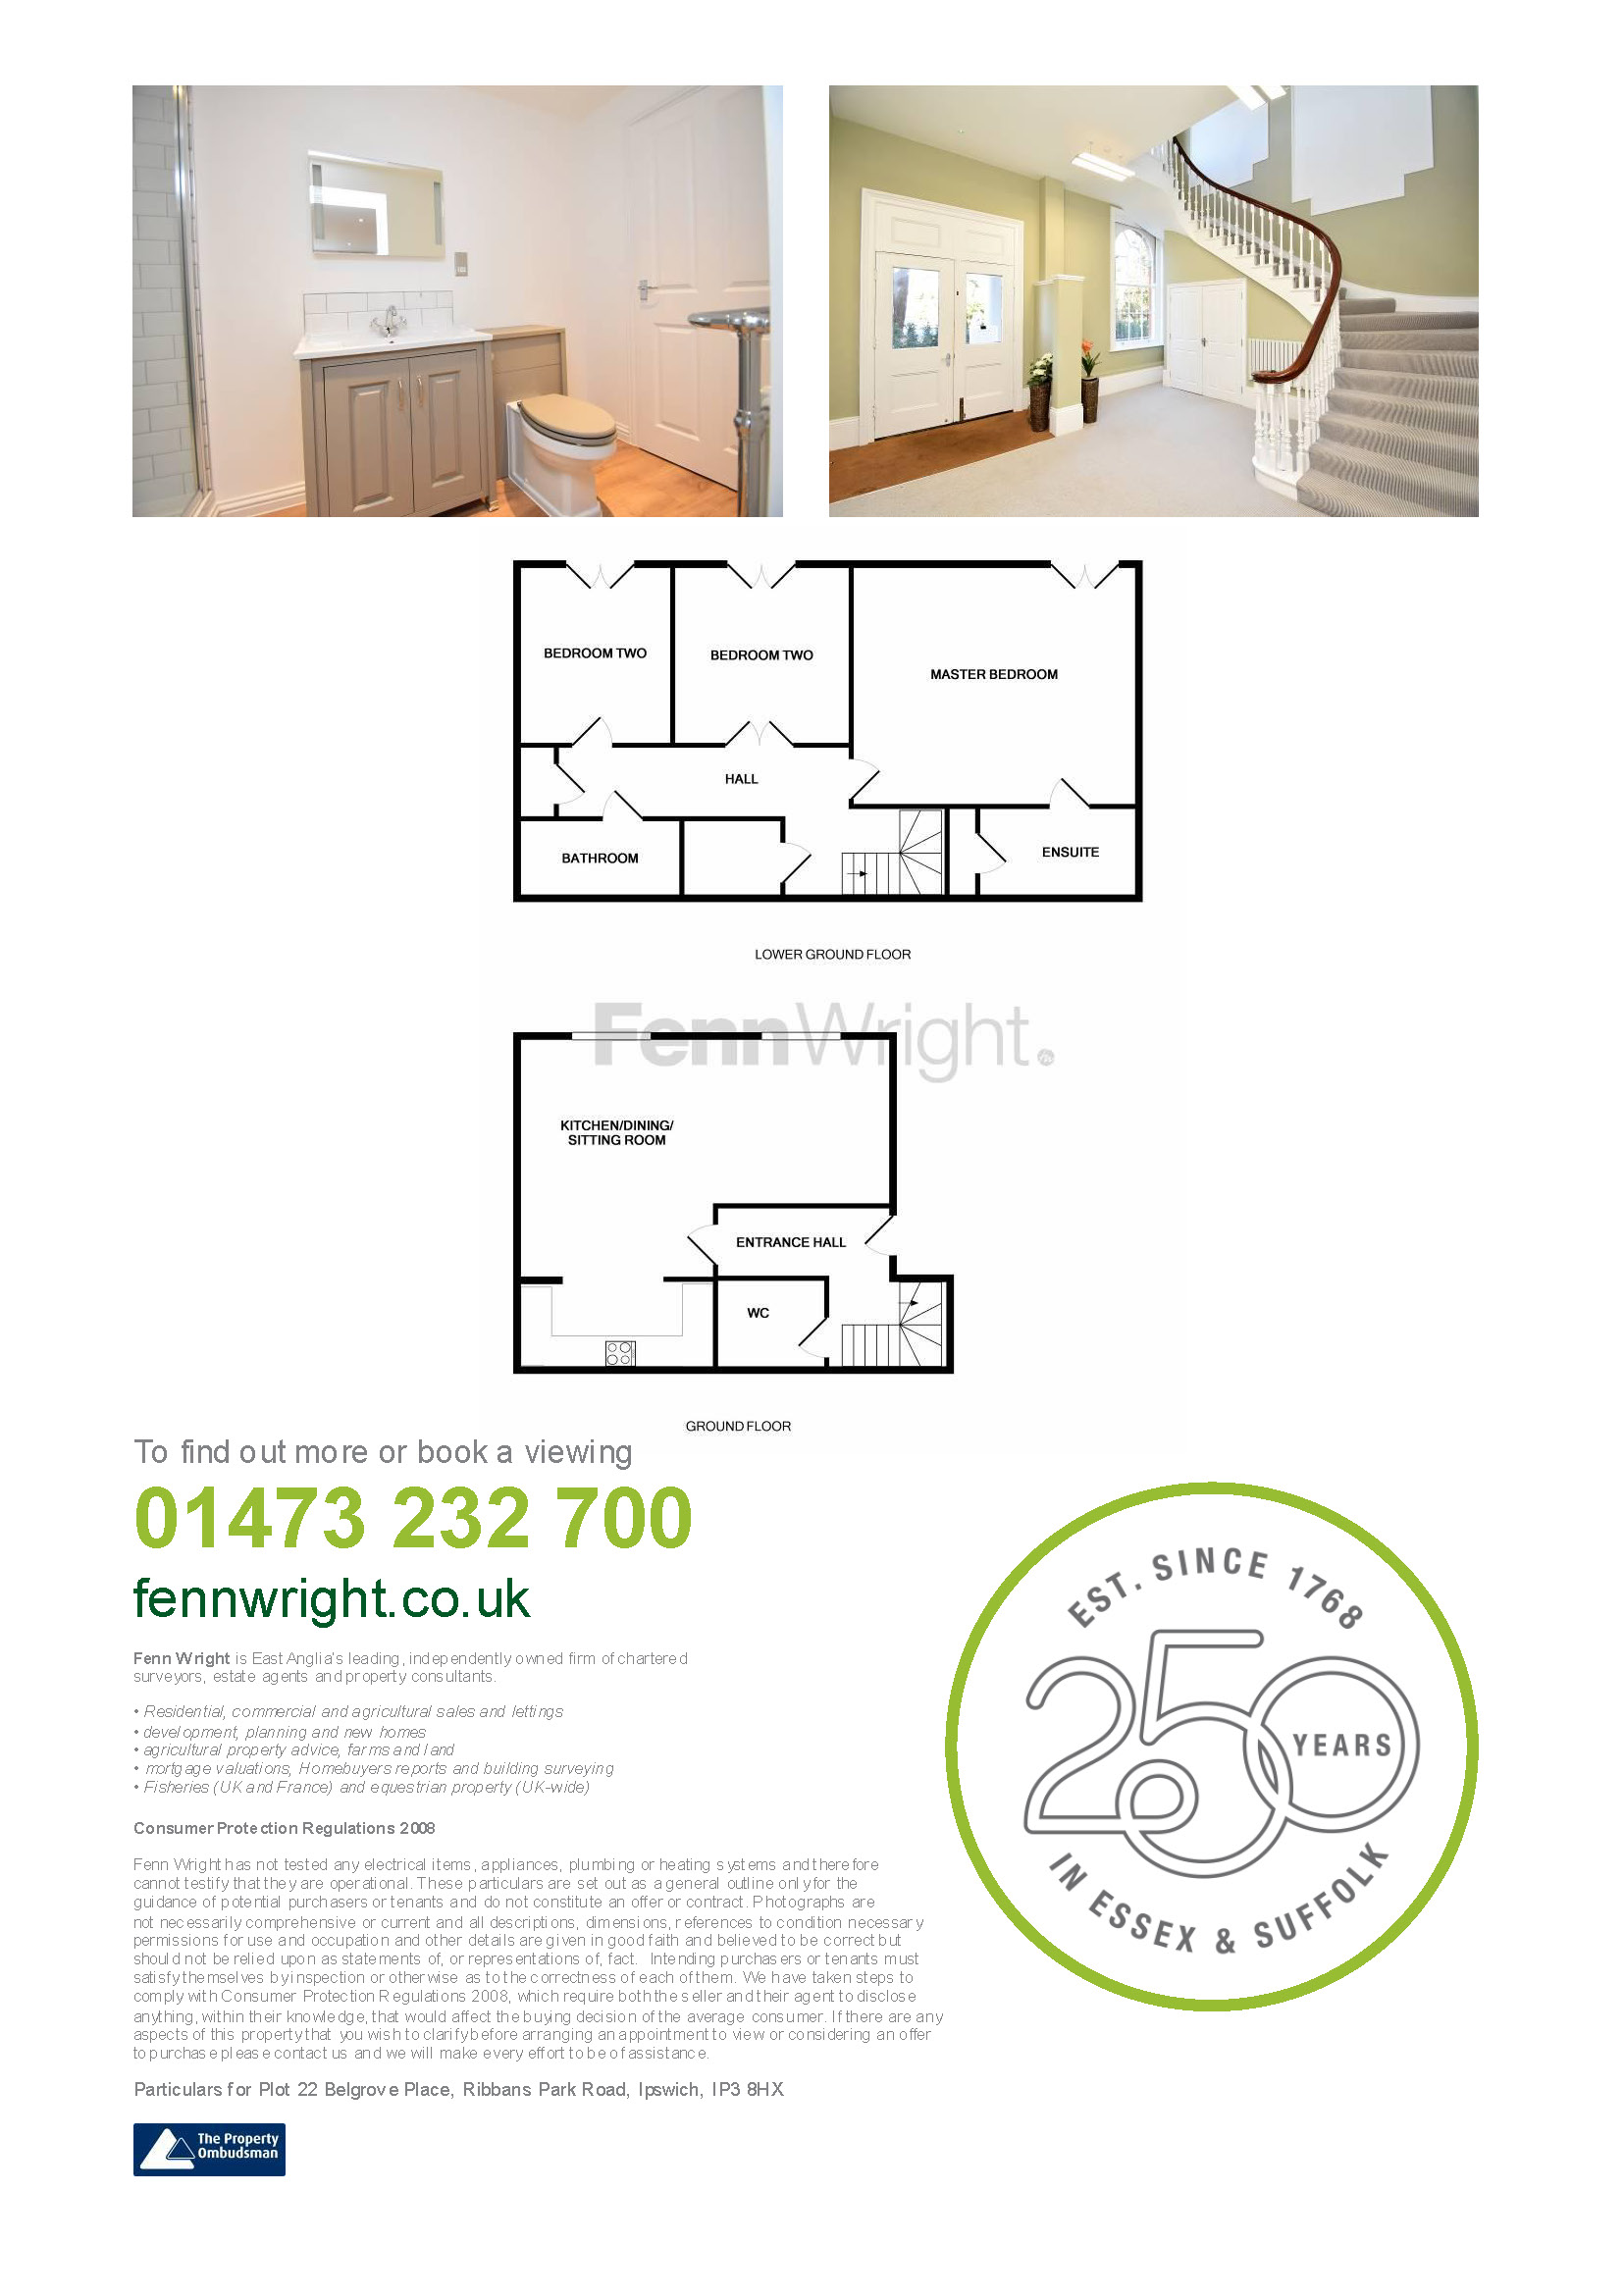 Plot 22 Belgrove Place Page 4